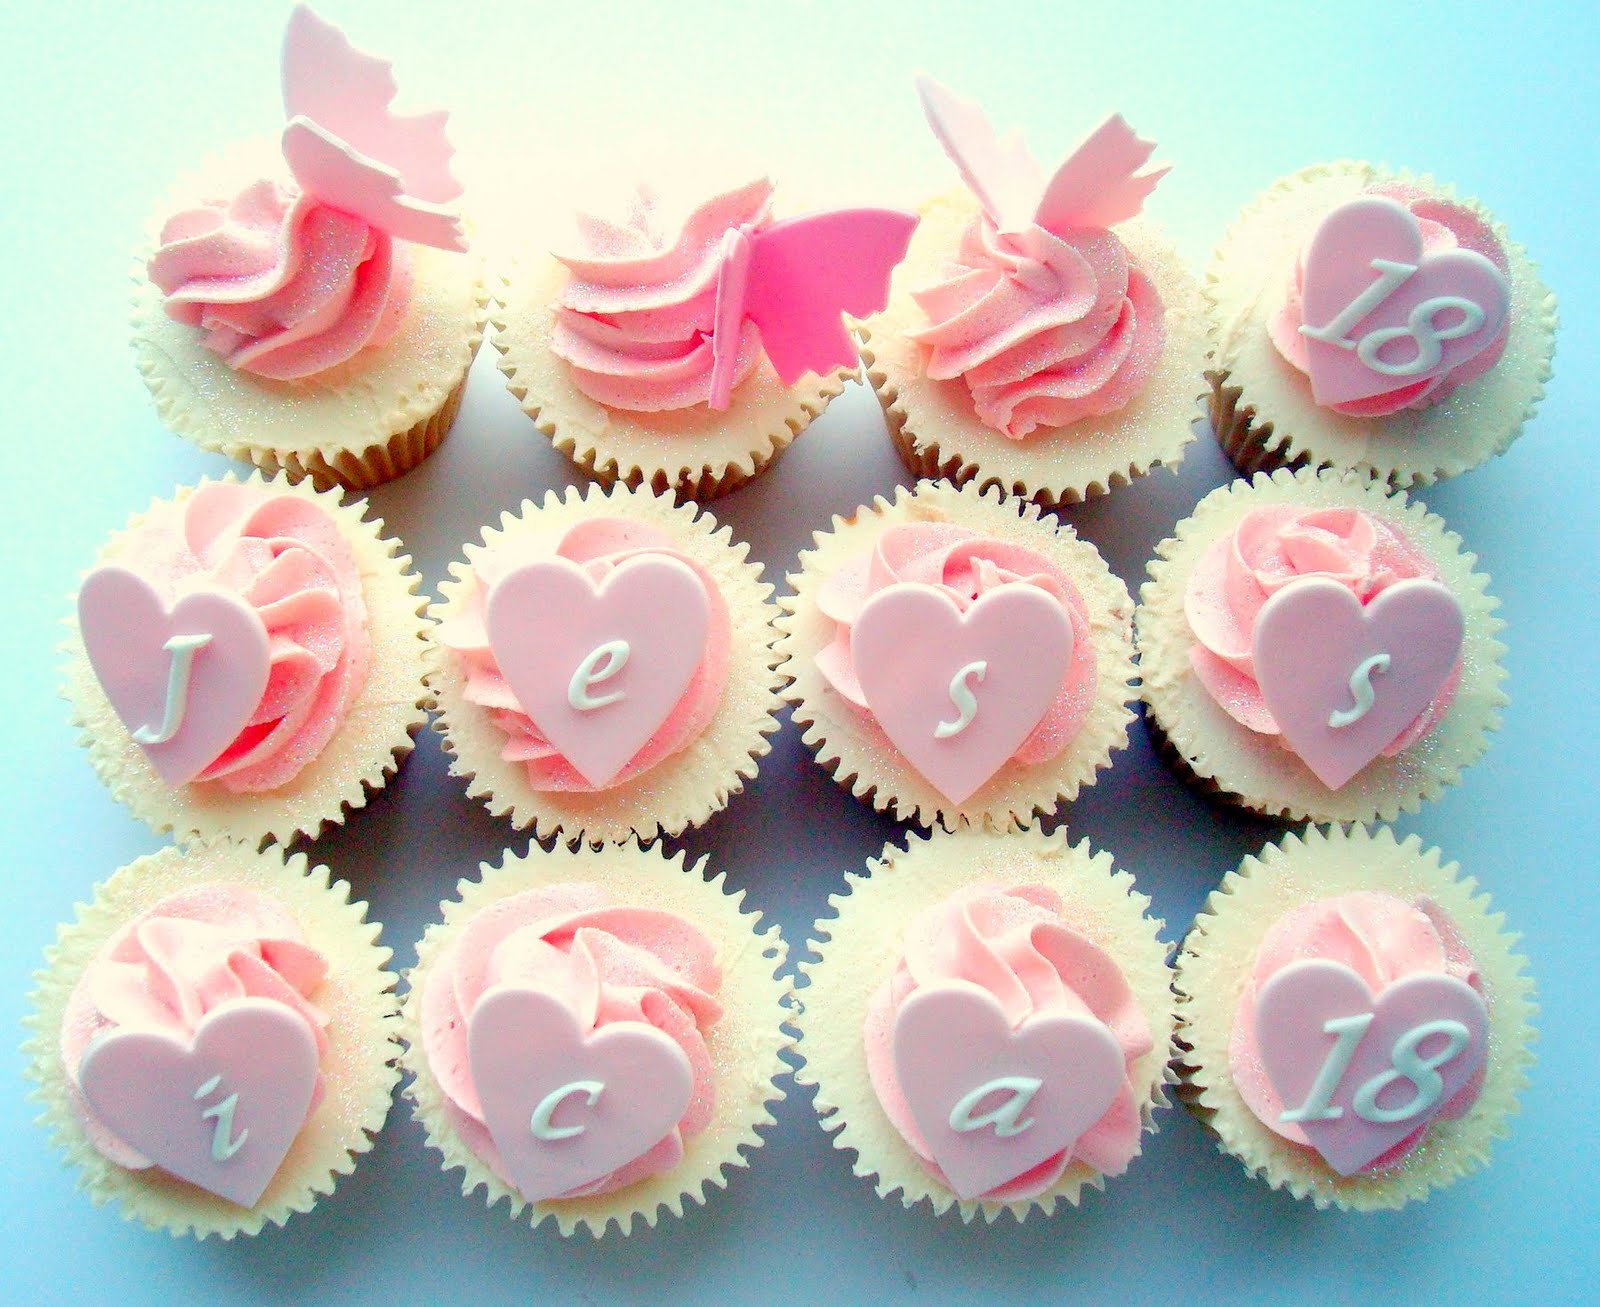 Fashion cake: Girly 18th cupcakes